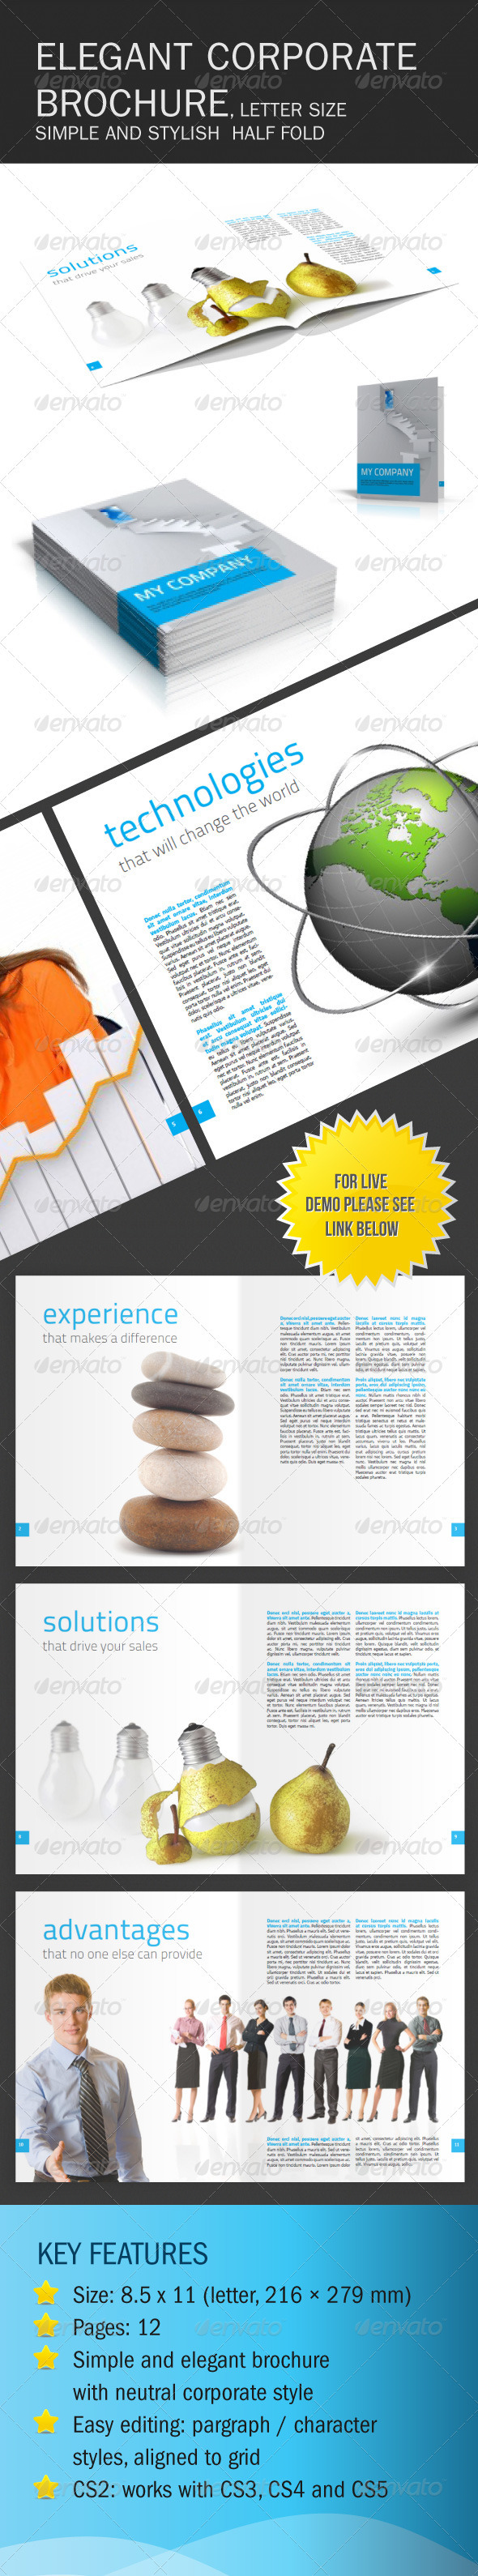 Clean and Elegant Corporate Brochure - Corporate Brochures